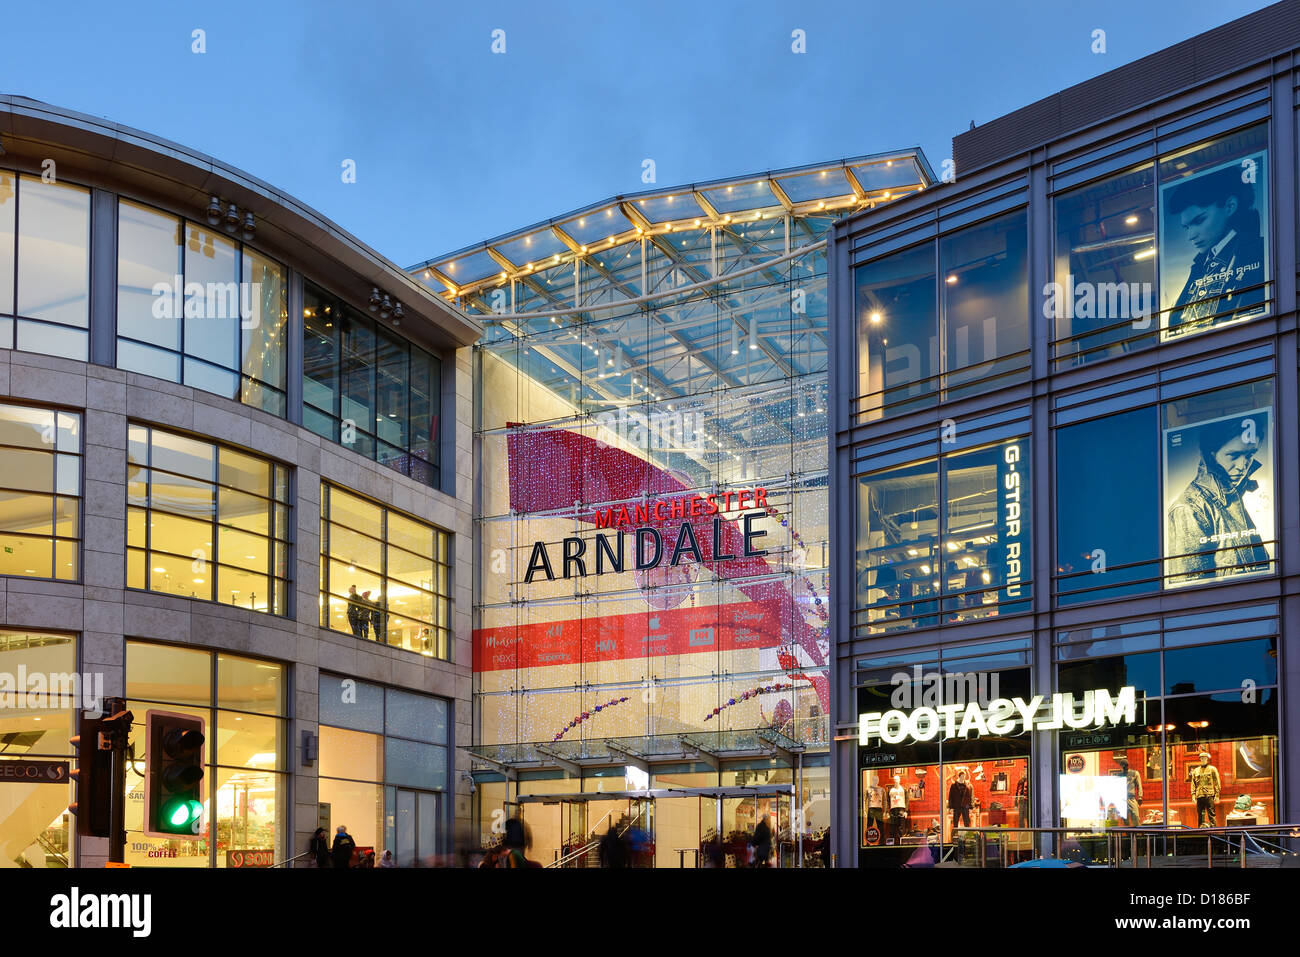 Entrance to The Manchester Arndale Centre - Stock Image